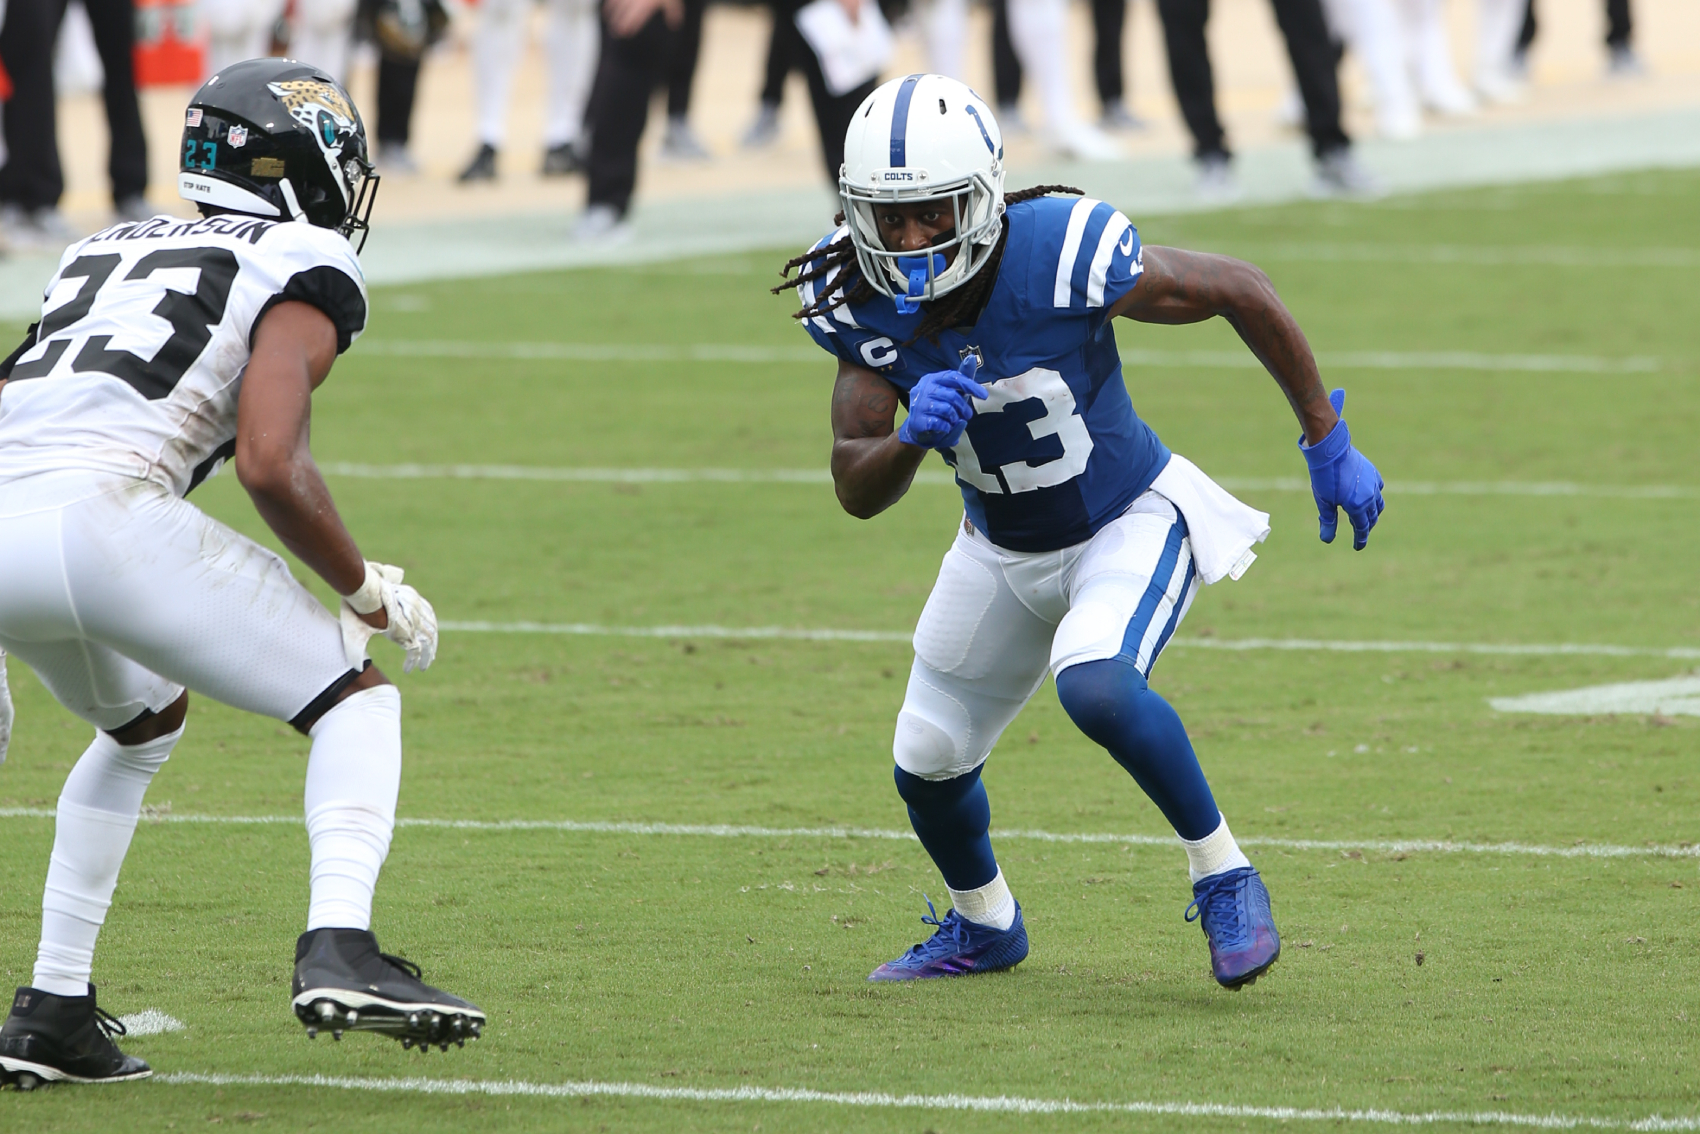 T.Y. Hilton has been extremely reliable for the Colts. After some disappointing performances this year, though, his grandma gave him a call.